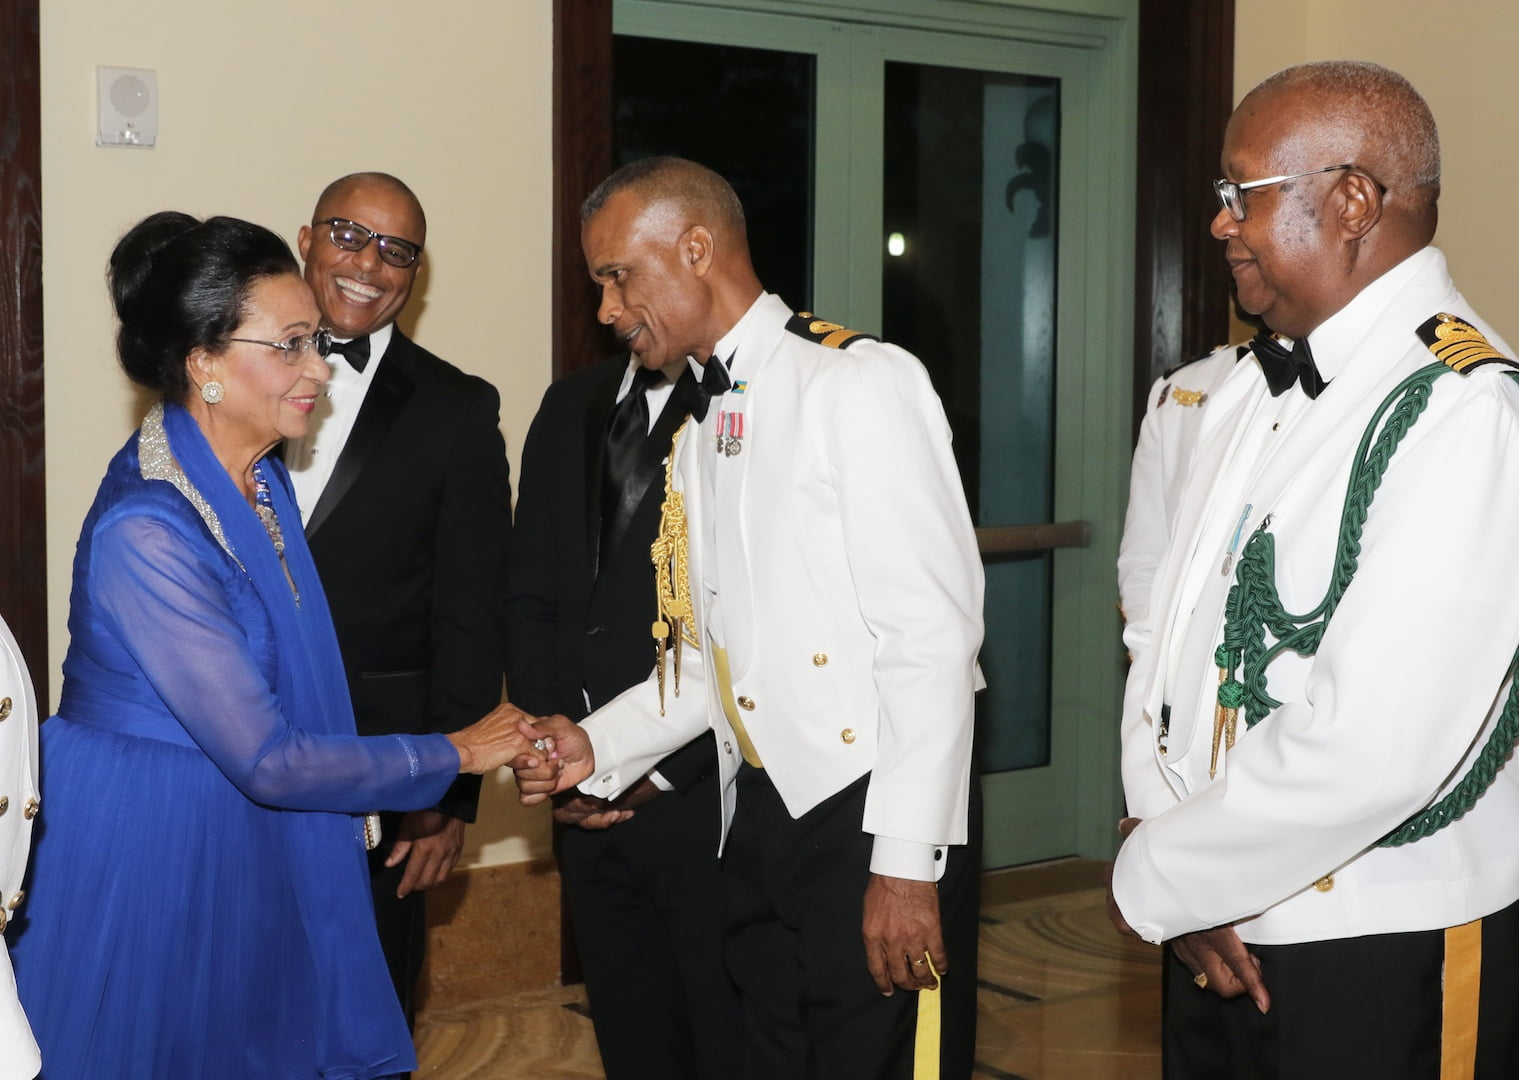 Governor General attends the Royal Bahamas Defence Force Annual Military Ball